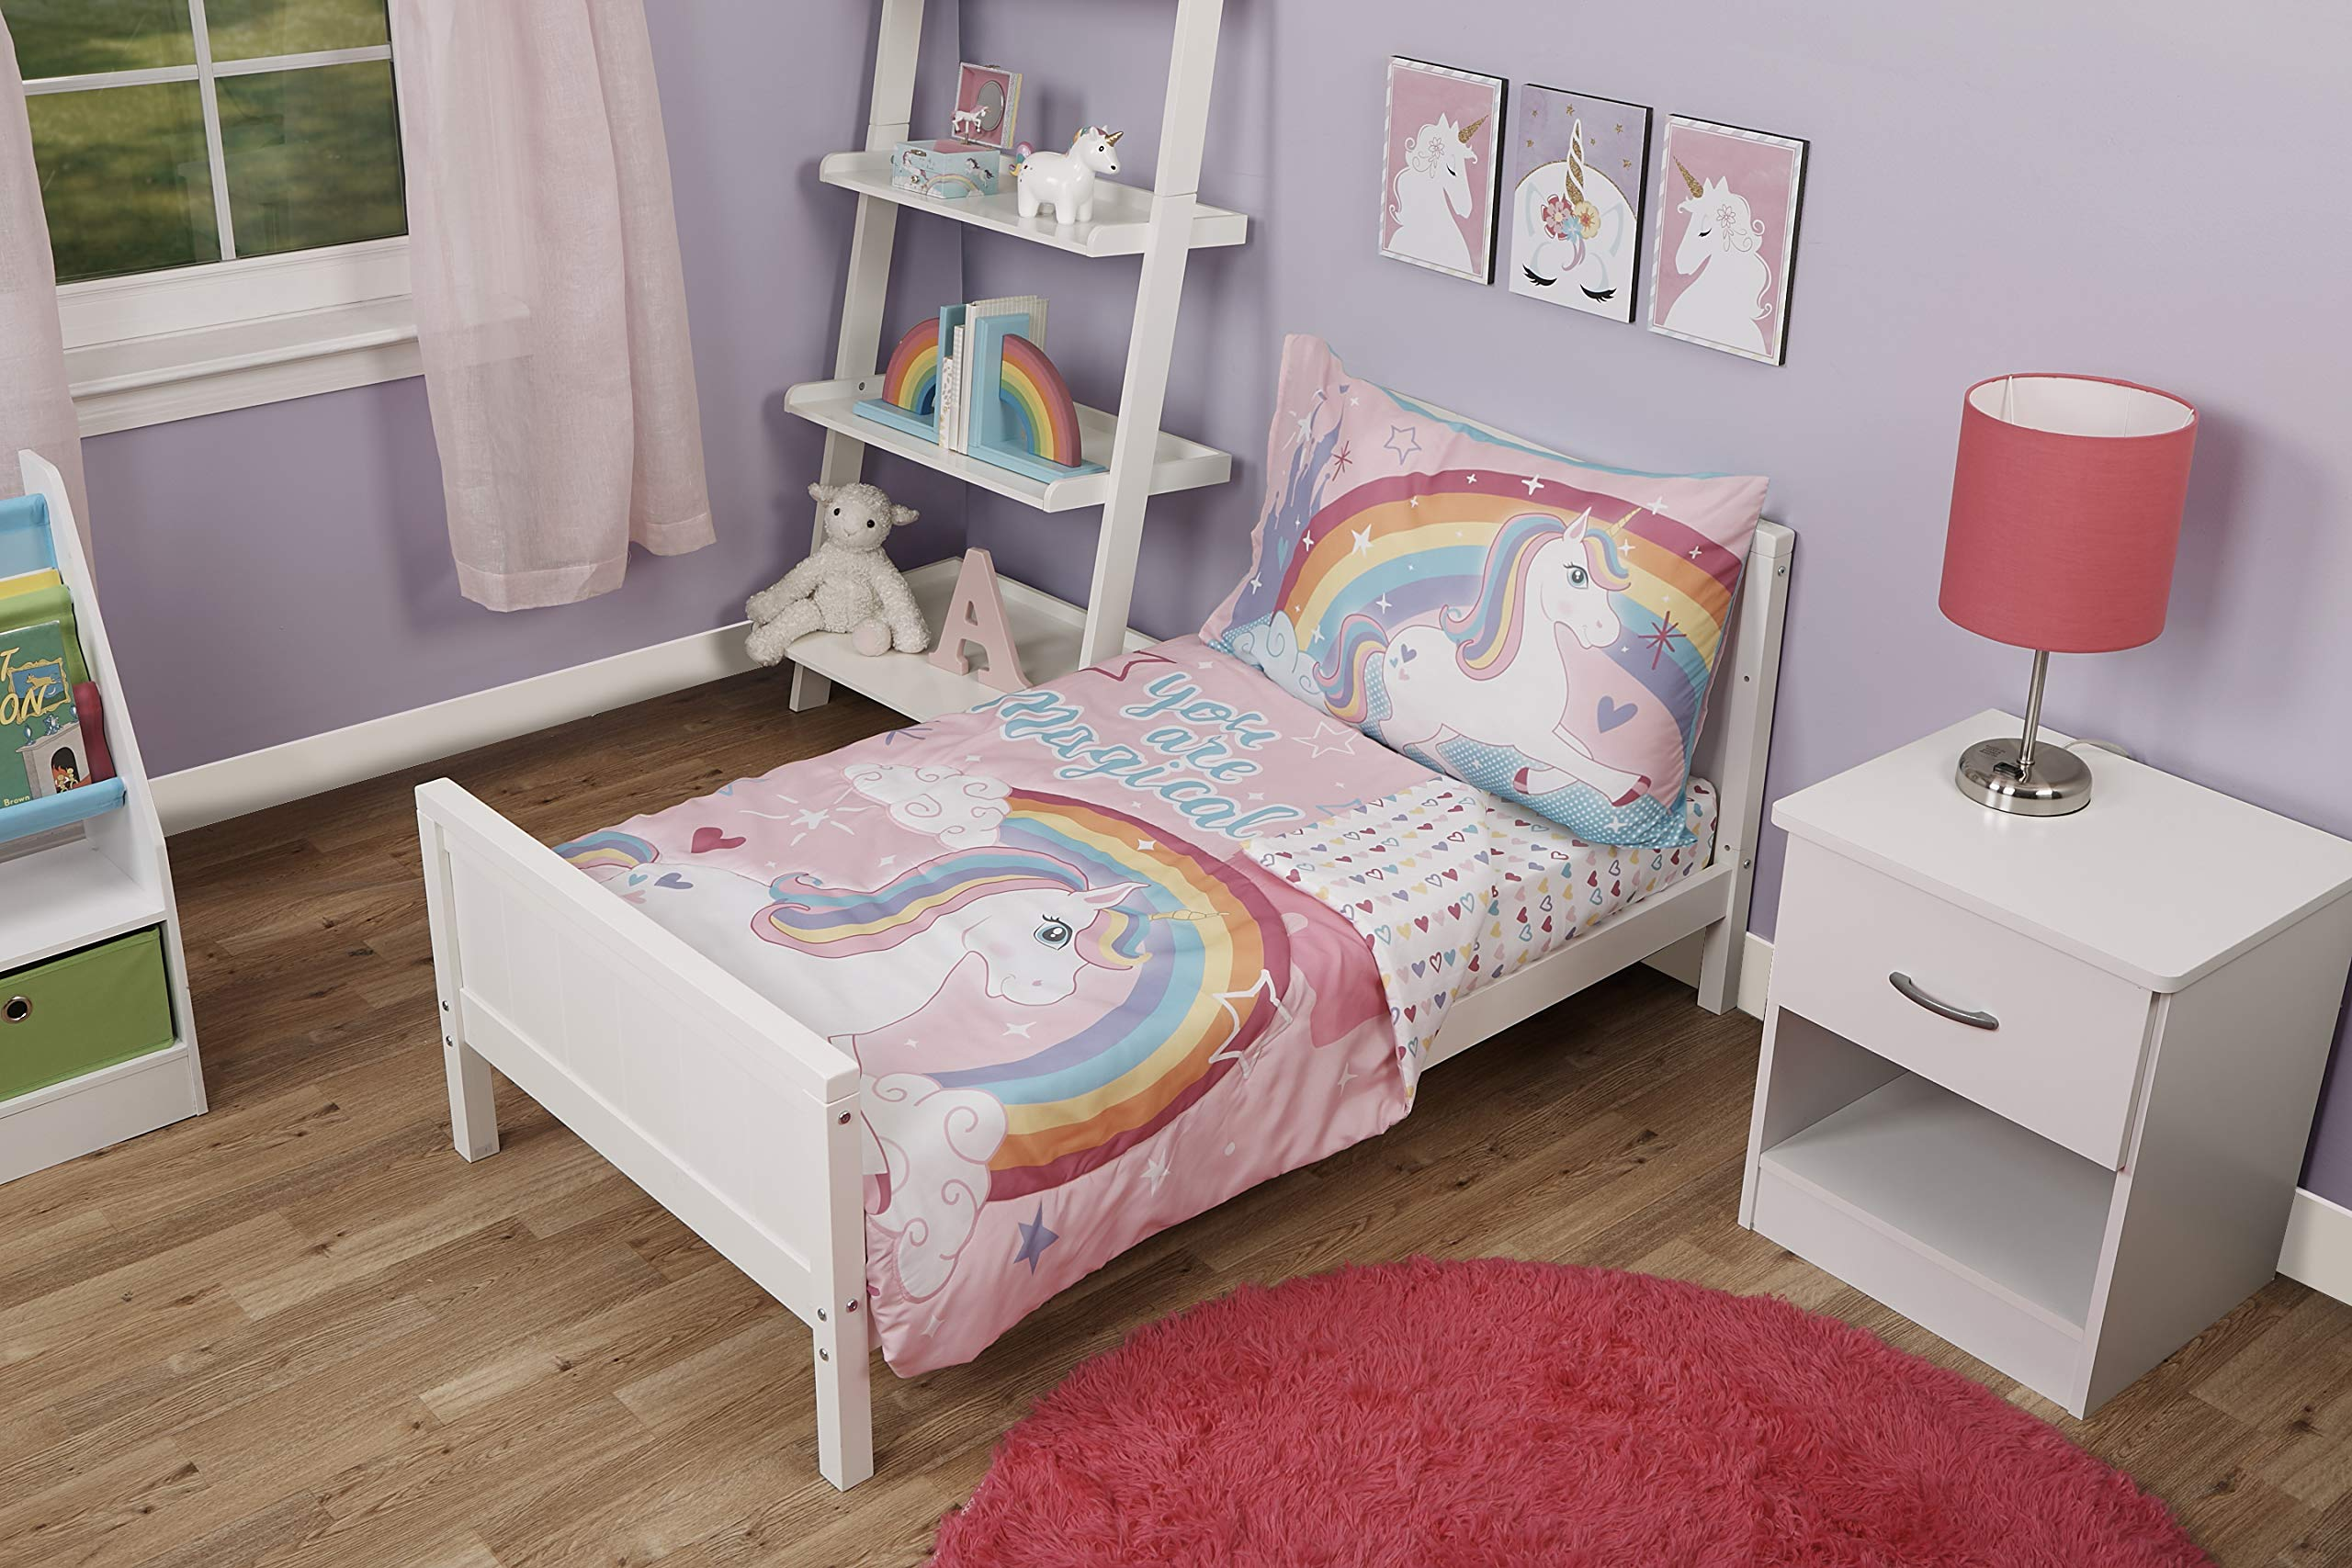 Funhouse 4 Piece Toddler Bedding Set - Includes Quilted Comforter, Fitted Sheet, Top Sheet, and Pillow Case - Unicorn Design for Girls Bed by Baby Boom